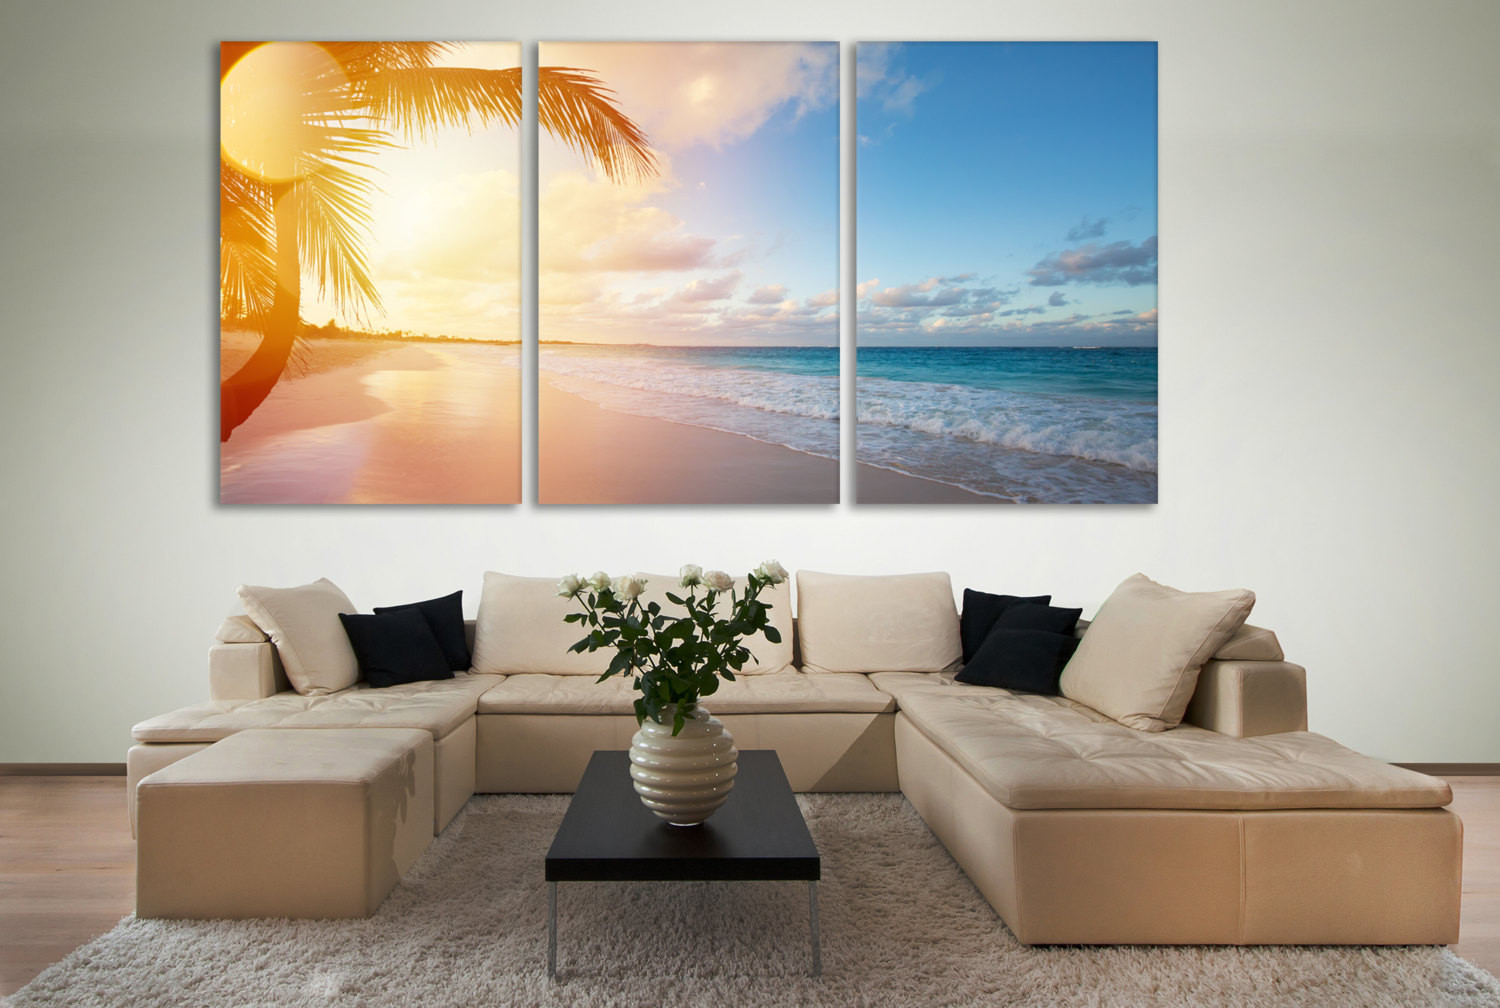 Best ideas about Beach Wall Art . Save or Pin Tropical Decor Beach Wall Art Ocean Wall Art Nature Print Now.